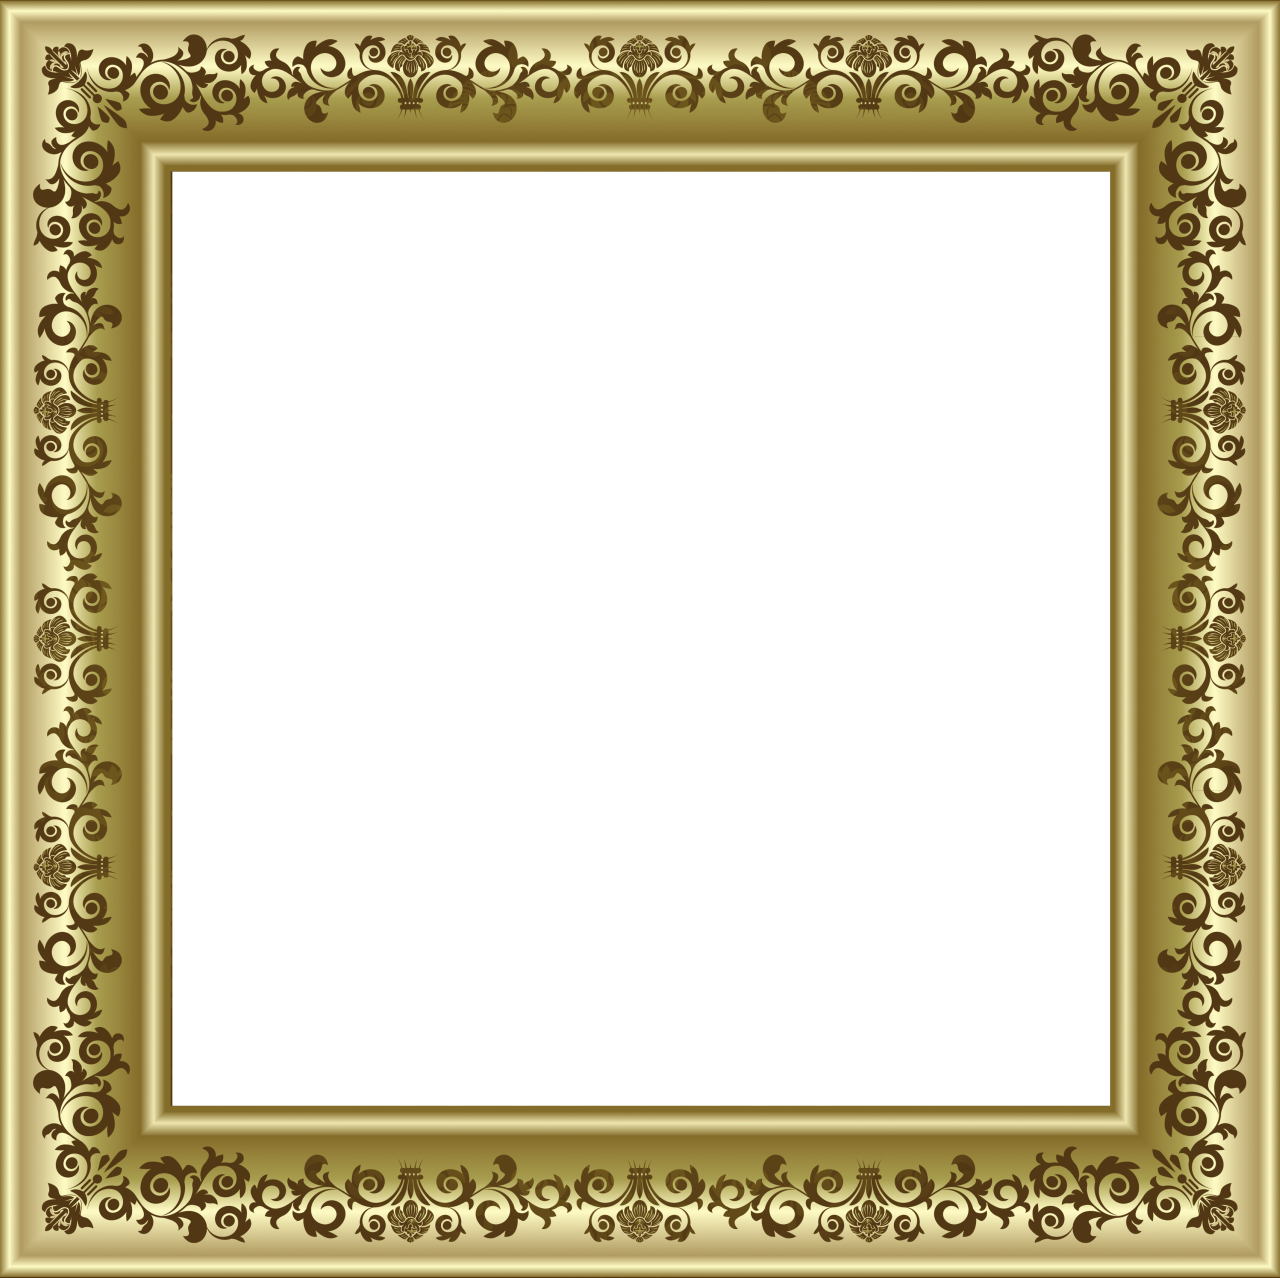 Gold frames png. Photo frame with brown